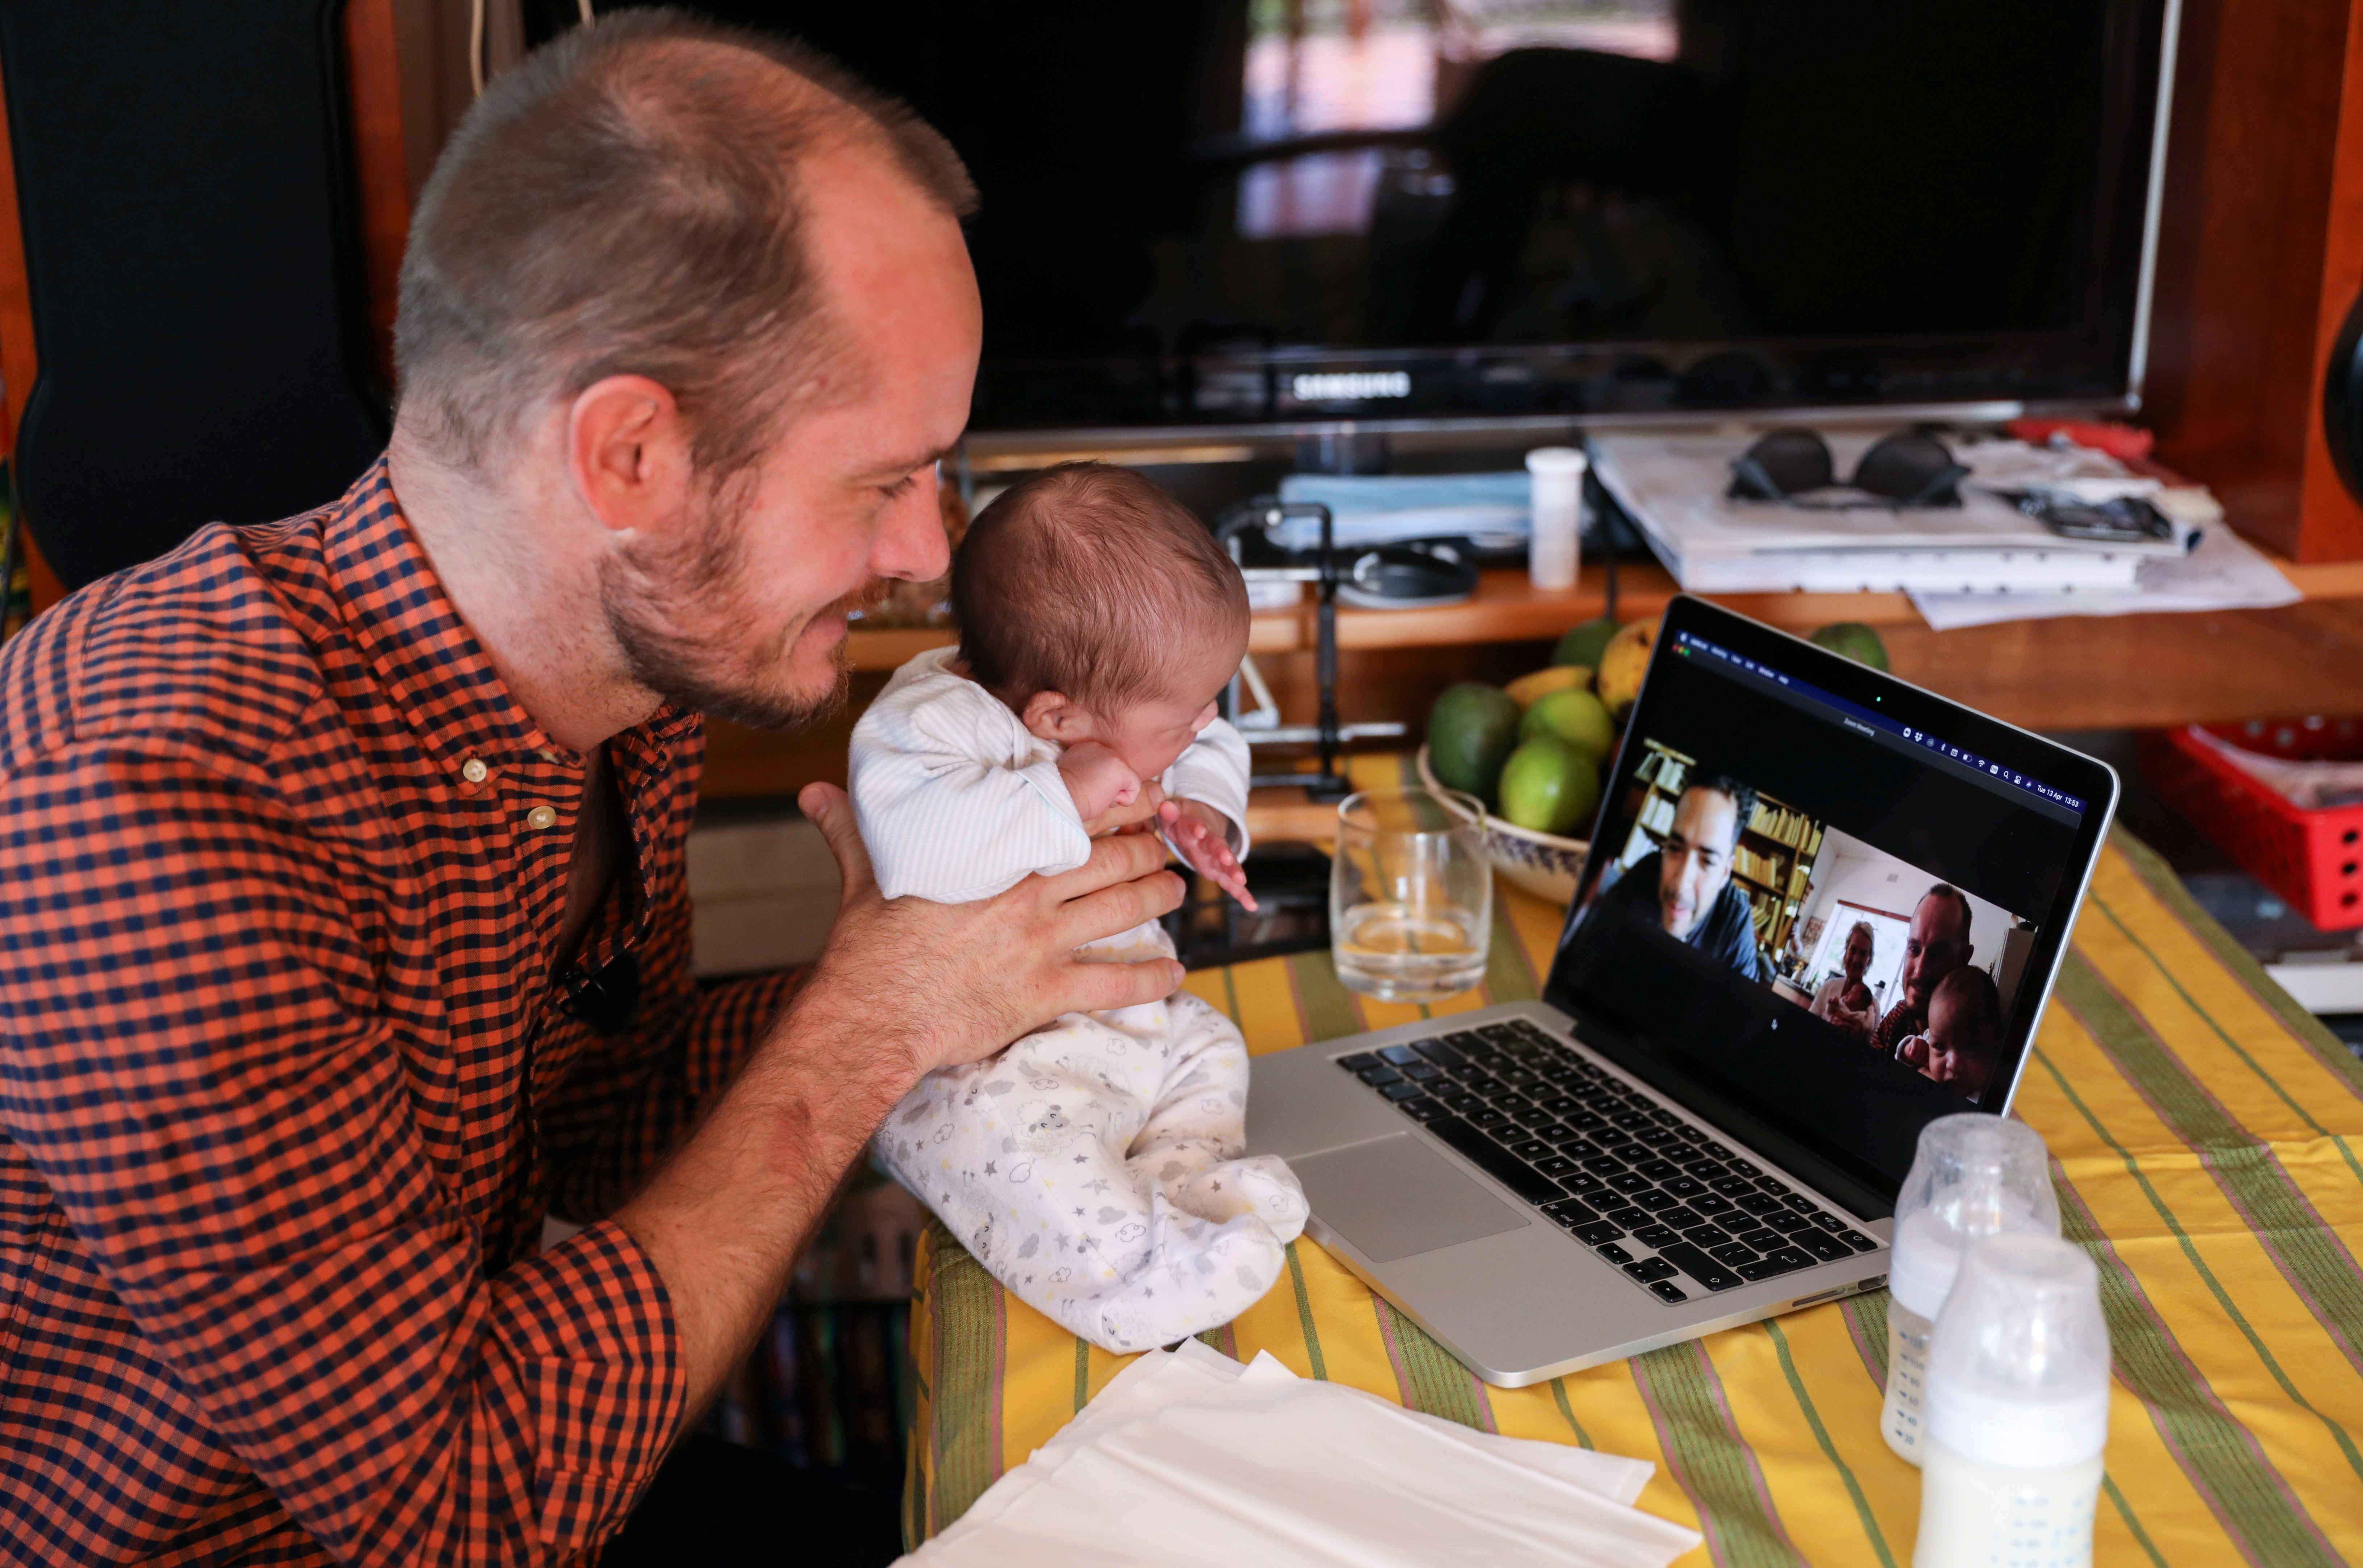 a man shows up a baby on a zoom call